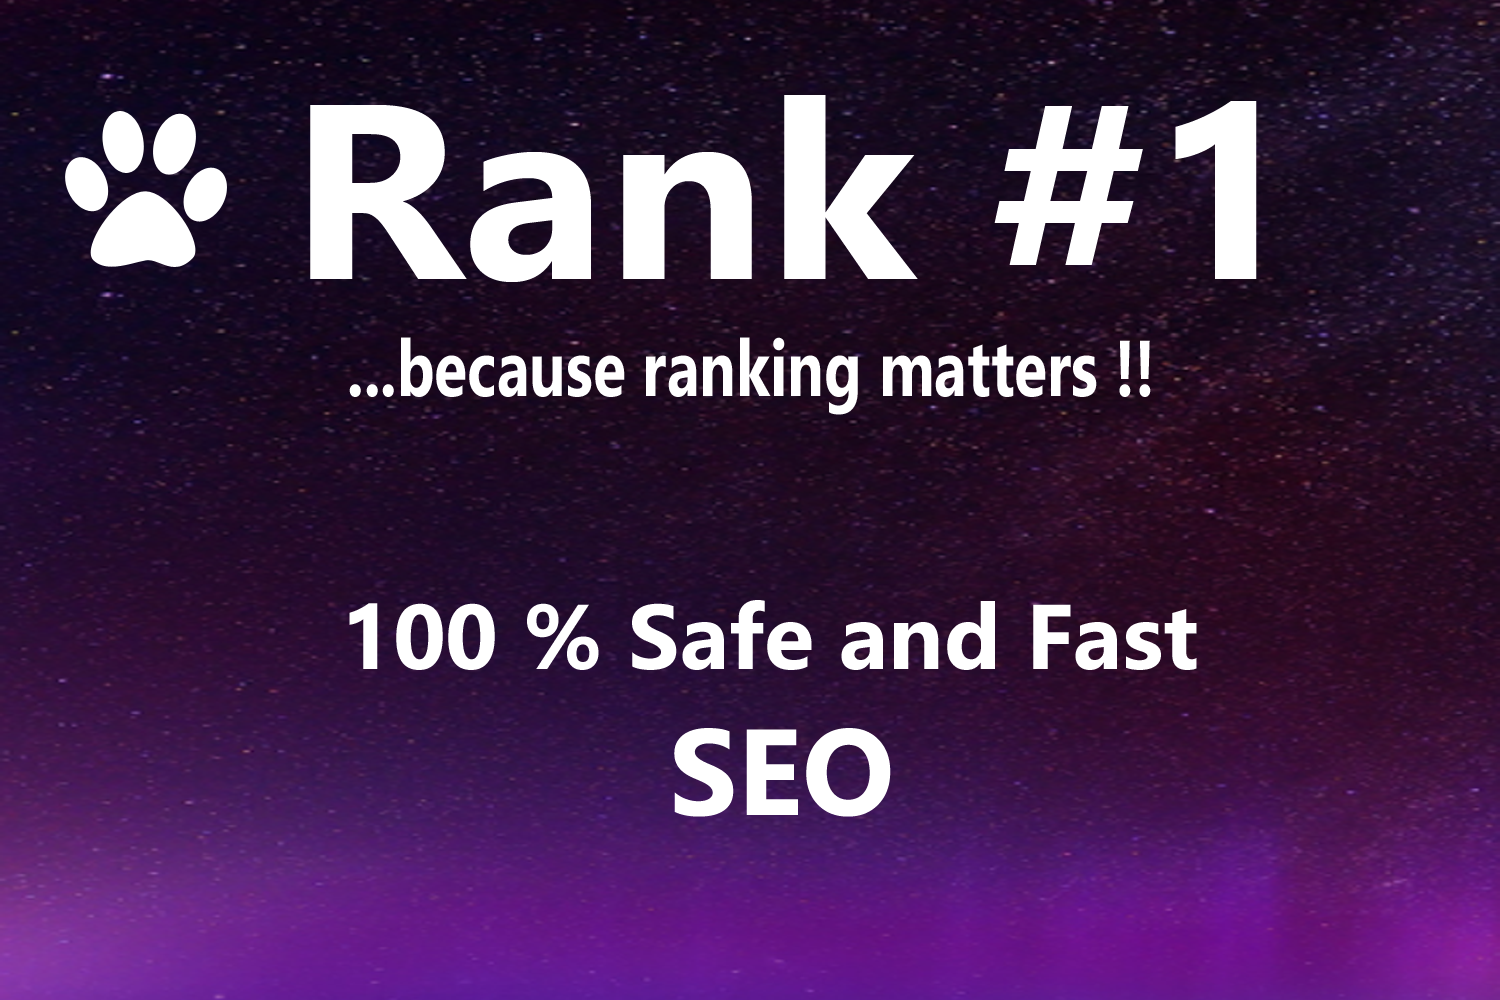 rank your website Very High in Google with Best SEO backlinks Traffic